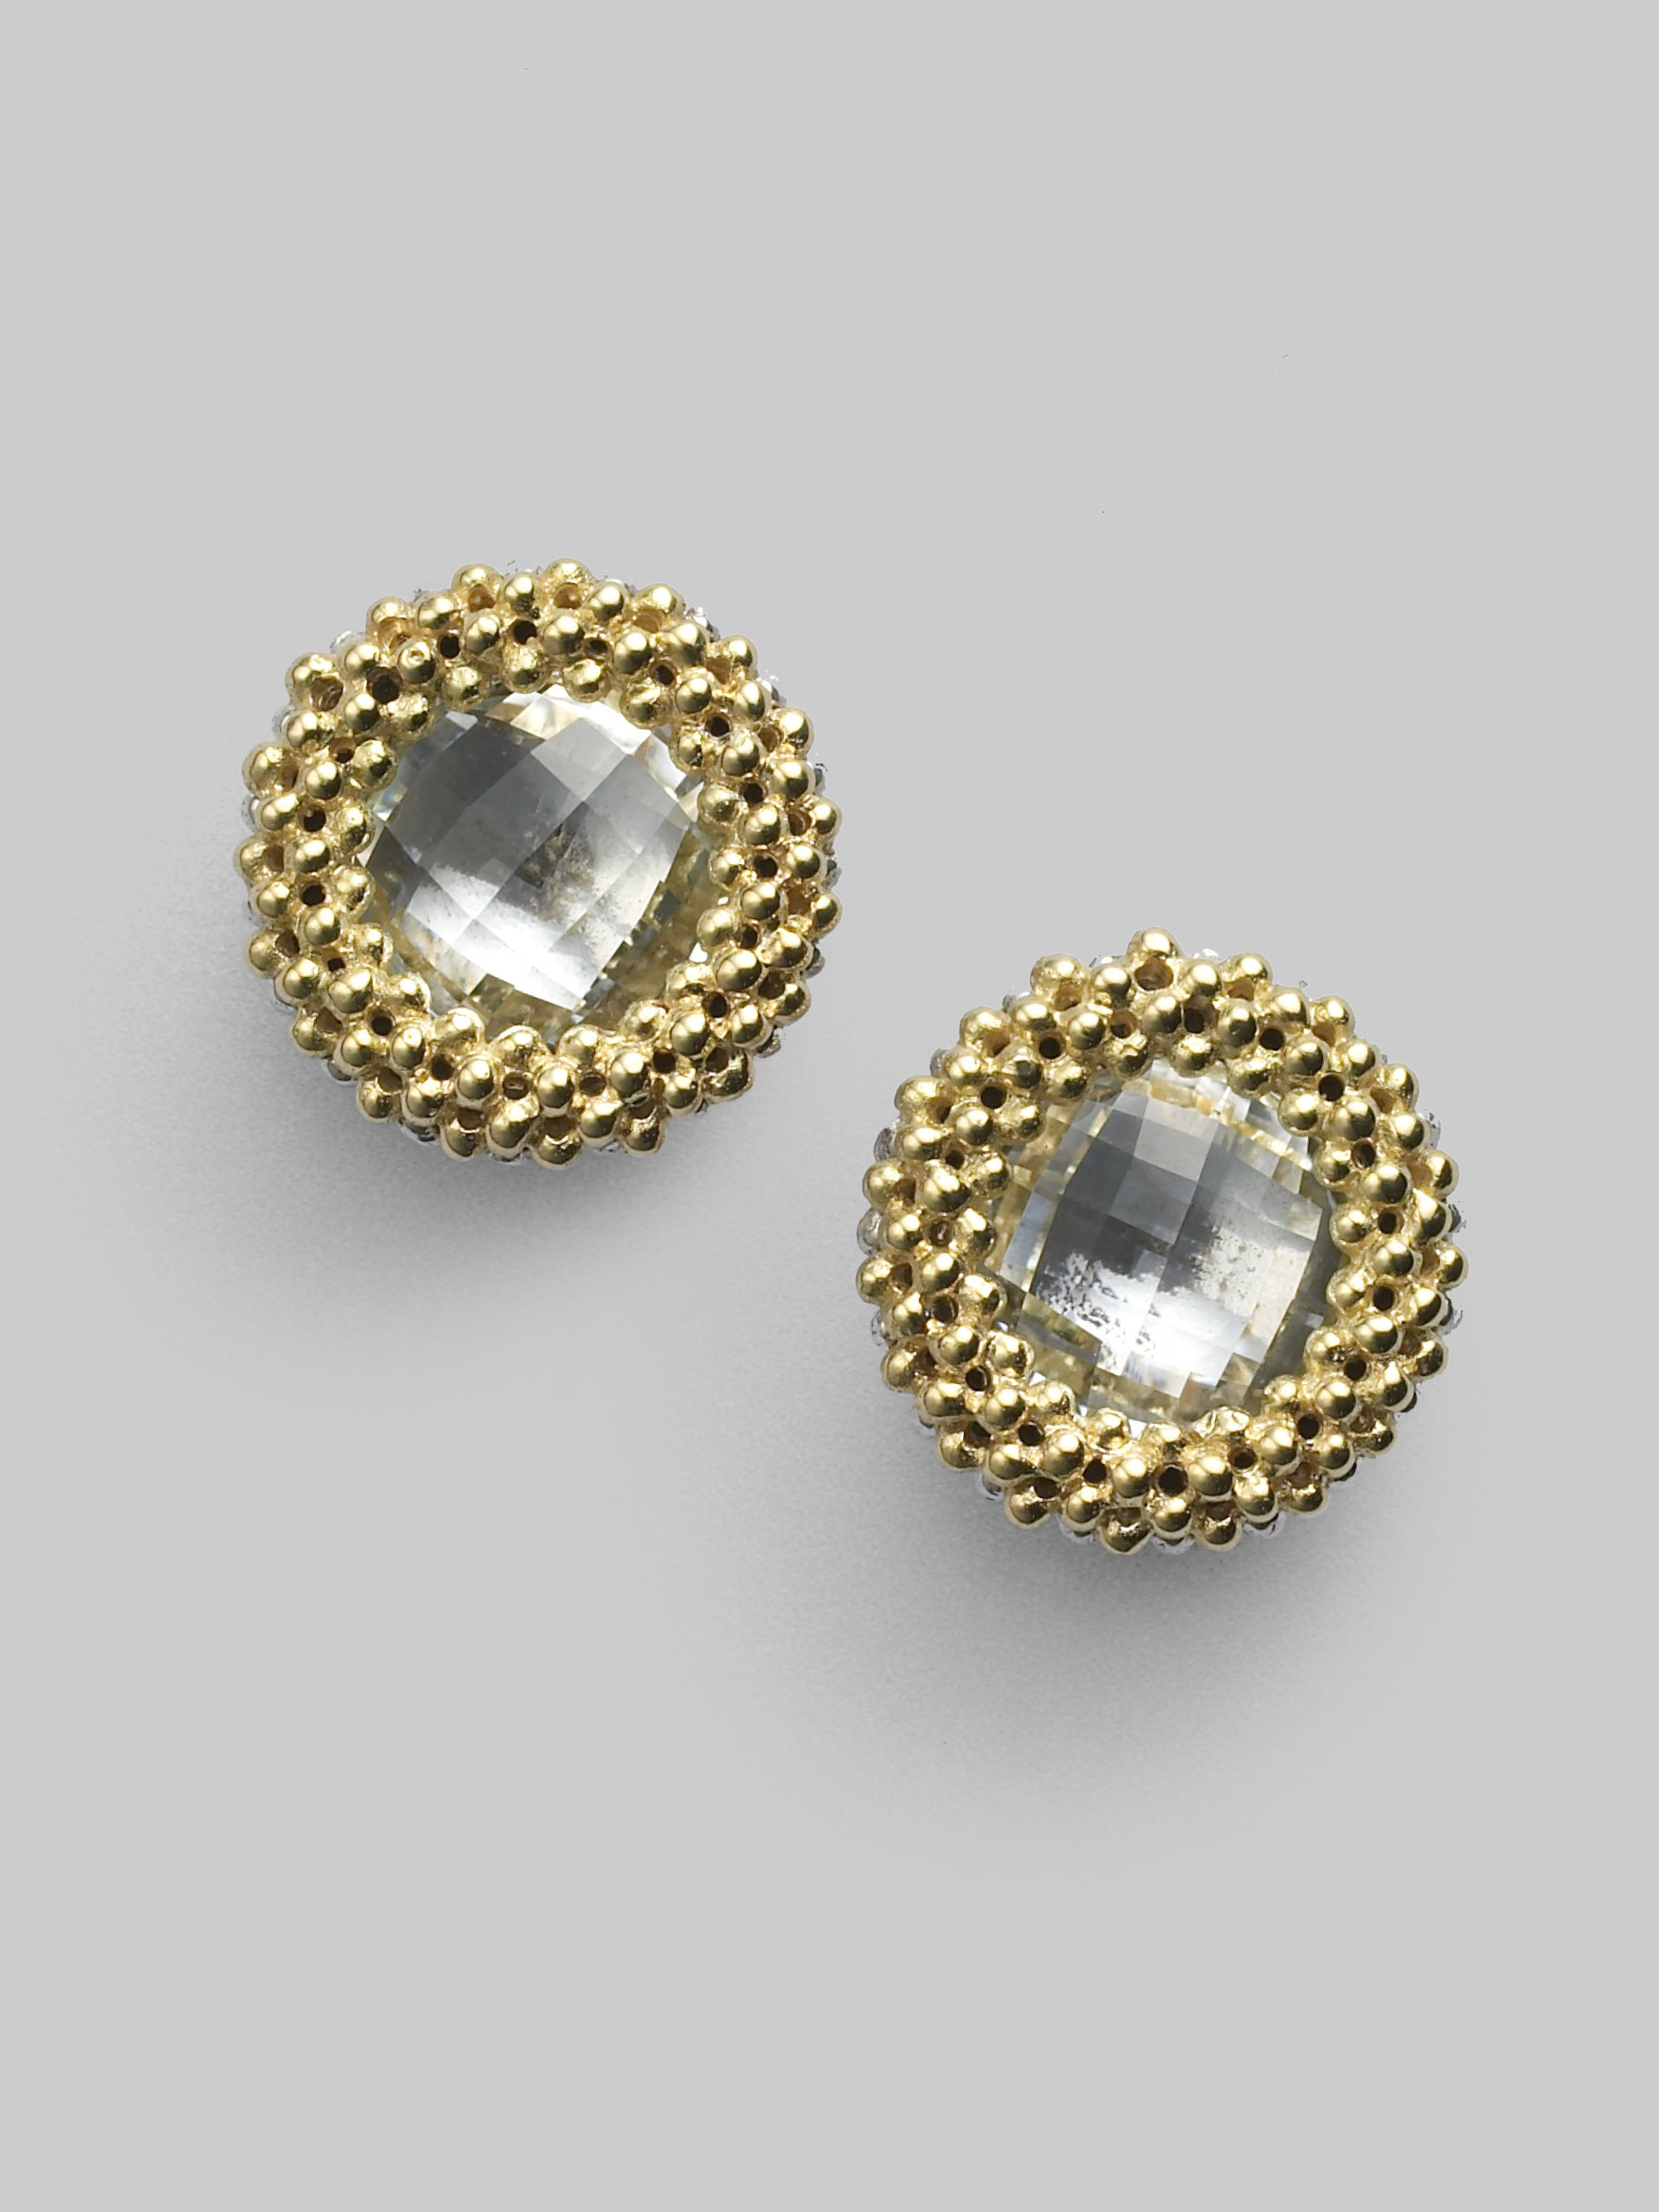 gemstone earrings diamond gold stud en online jewellery